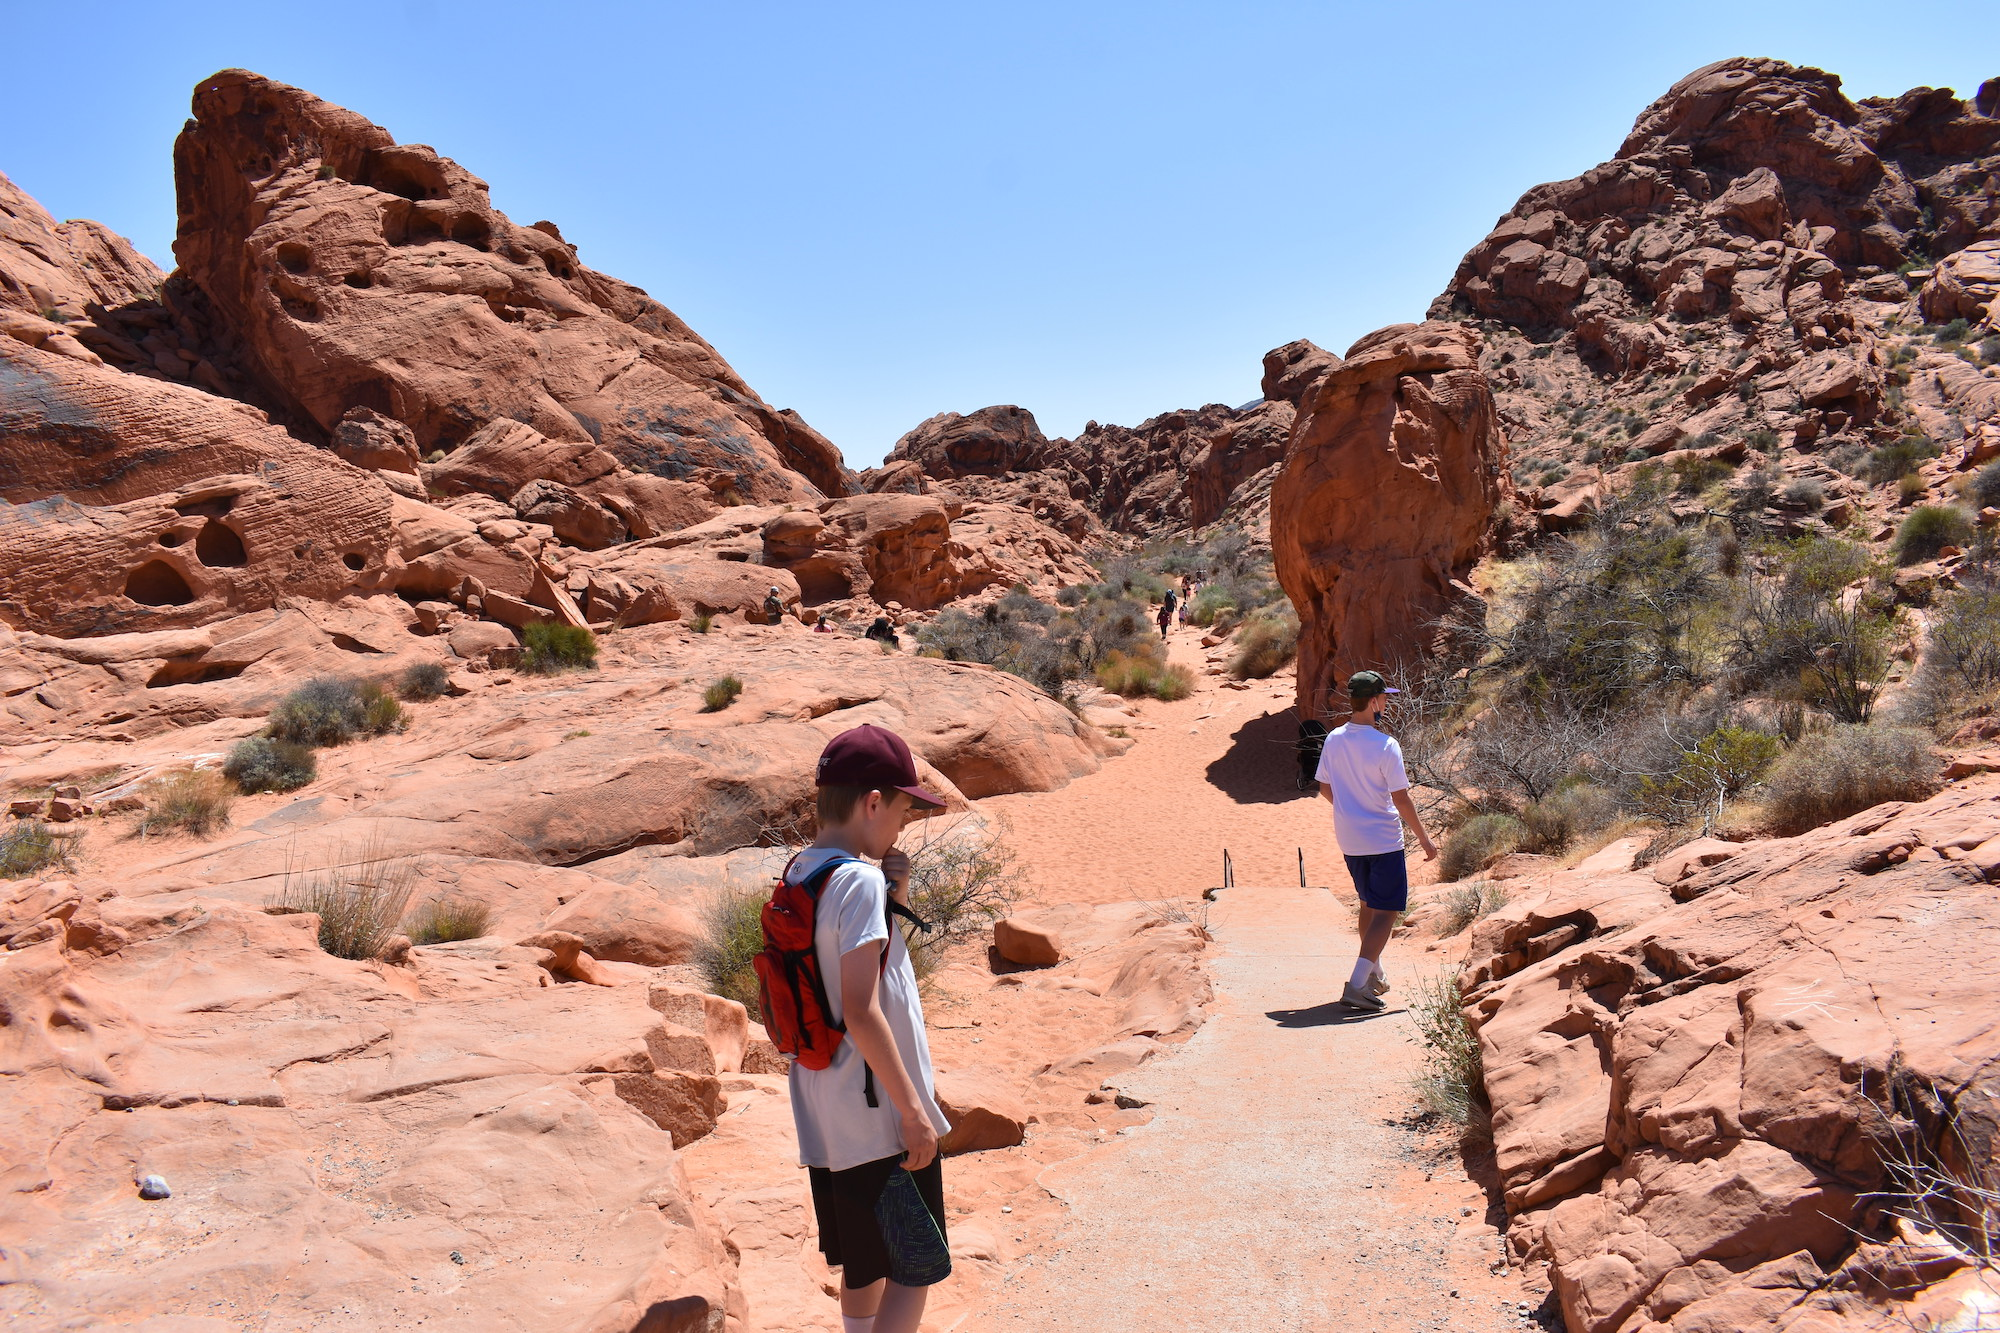 Two boys hiking in Valley of Fire State Park.